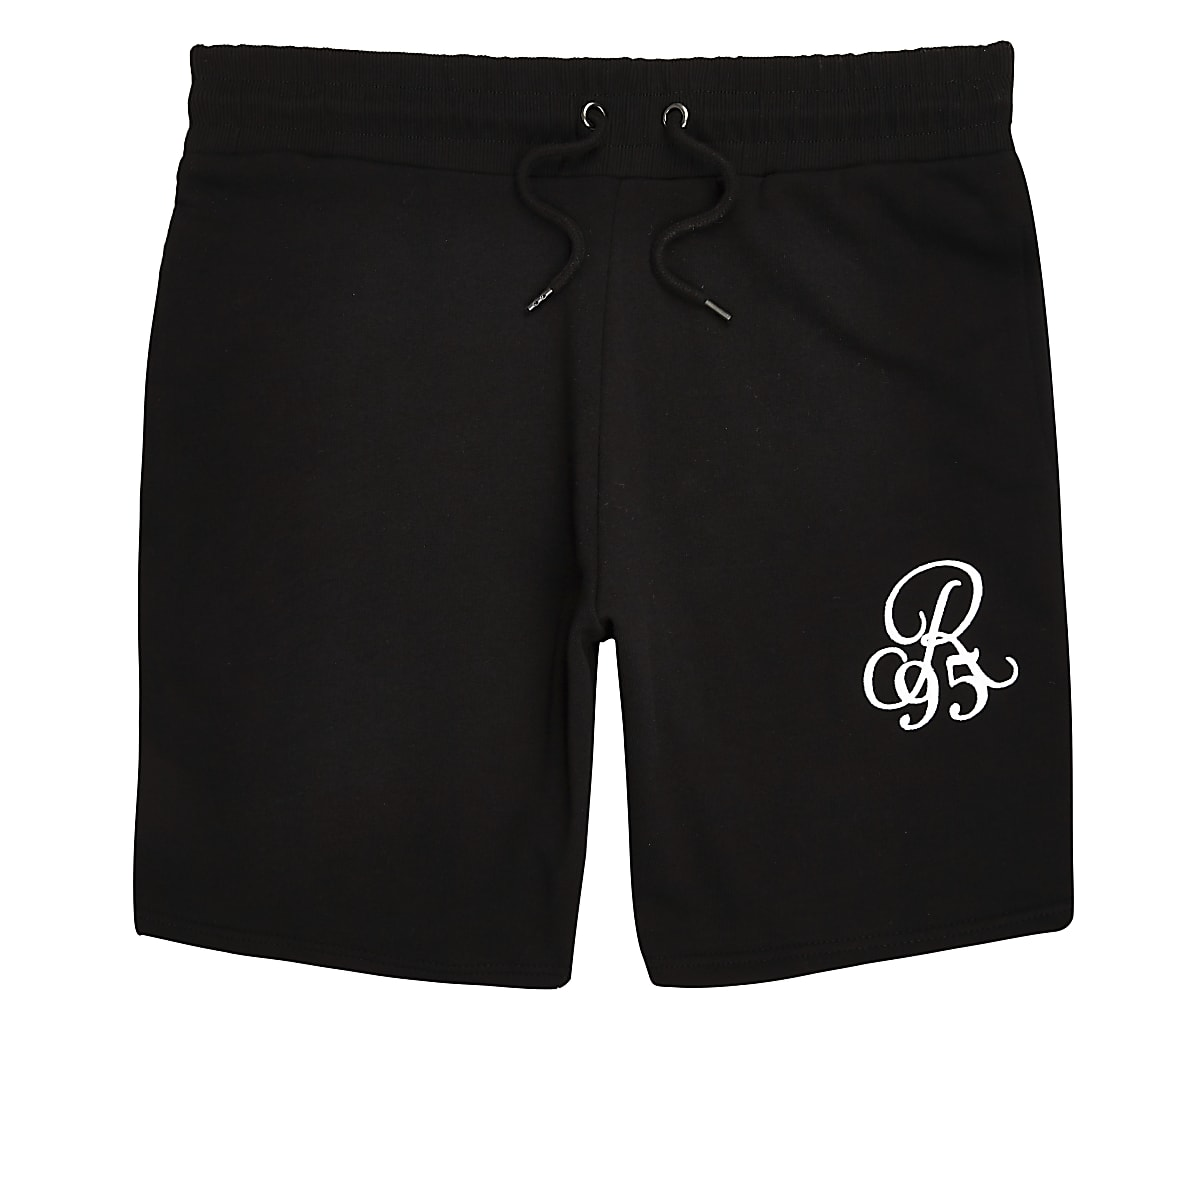 Black R96 embroidered slim fit shorts